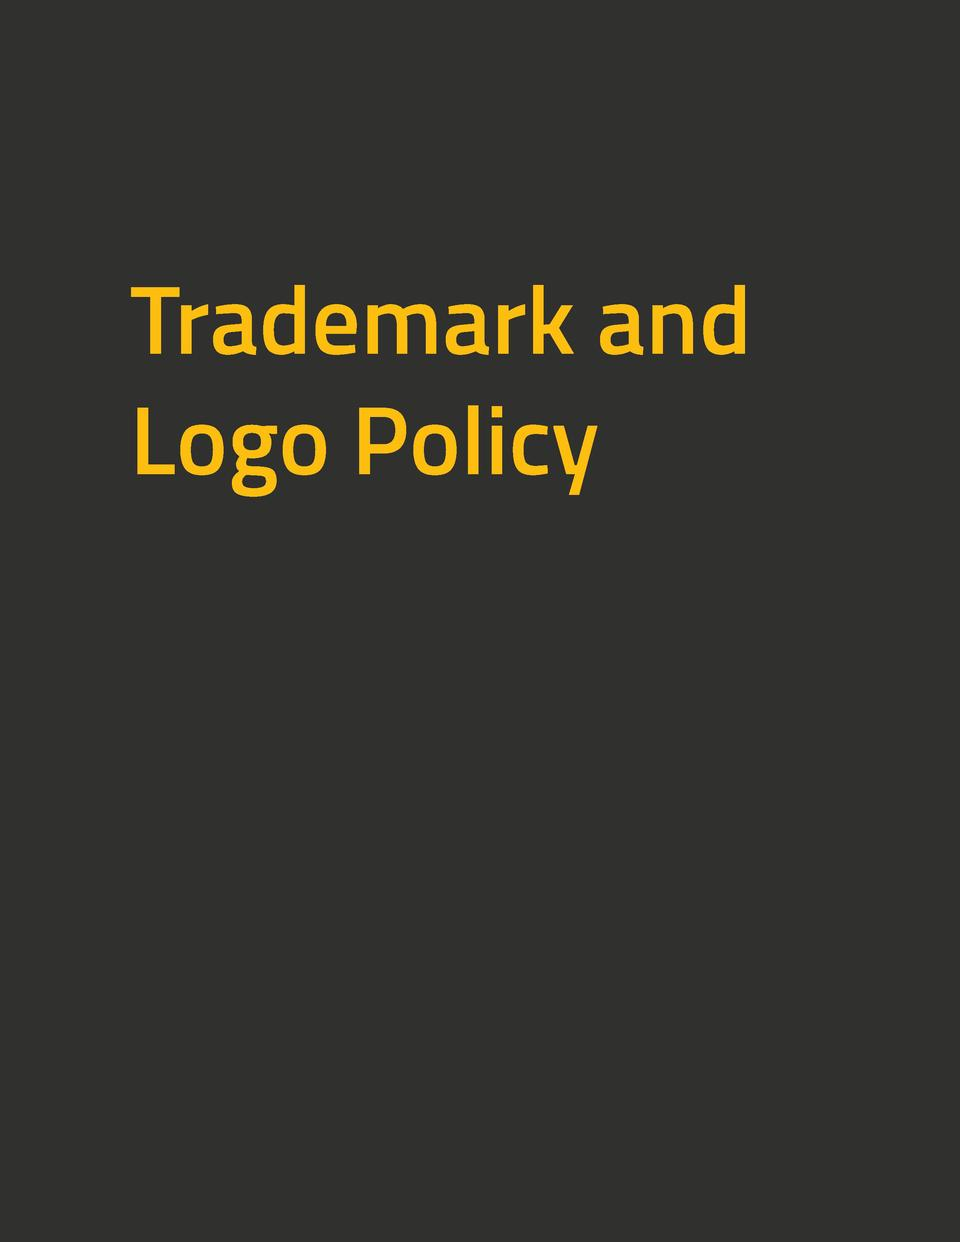 Trademark and Logo Policy